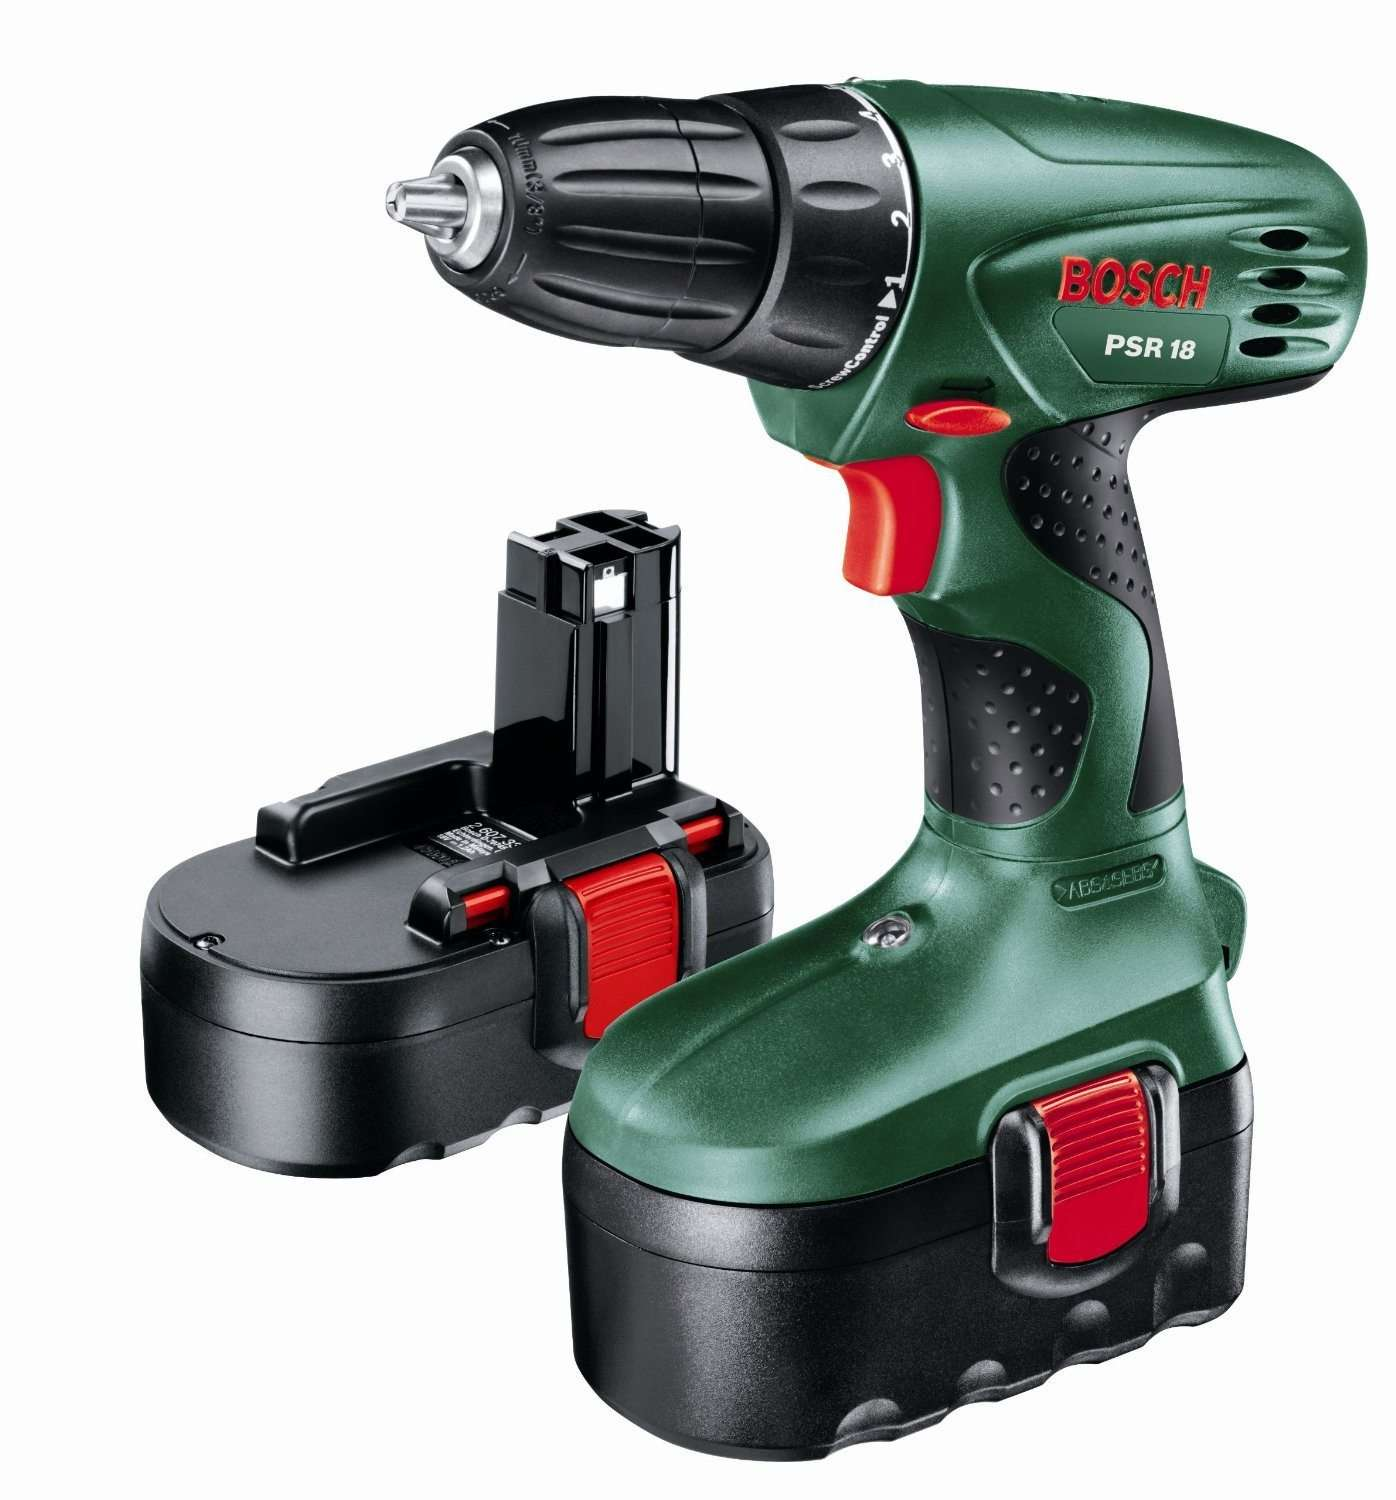 bosch psr 18 cordless drill uk review with 2 batteries. Black Bedroom Furniture Sets. Home Design Ideas